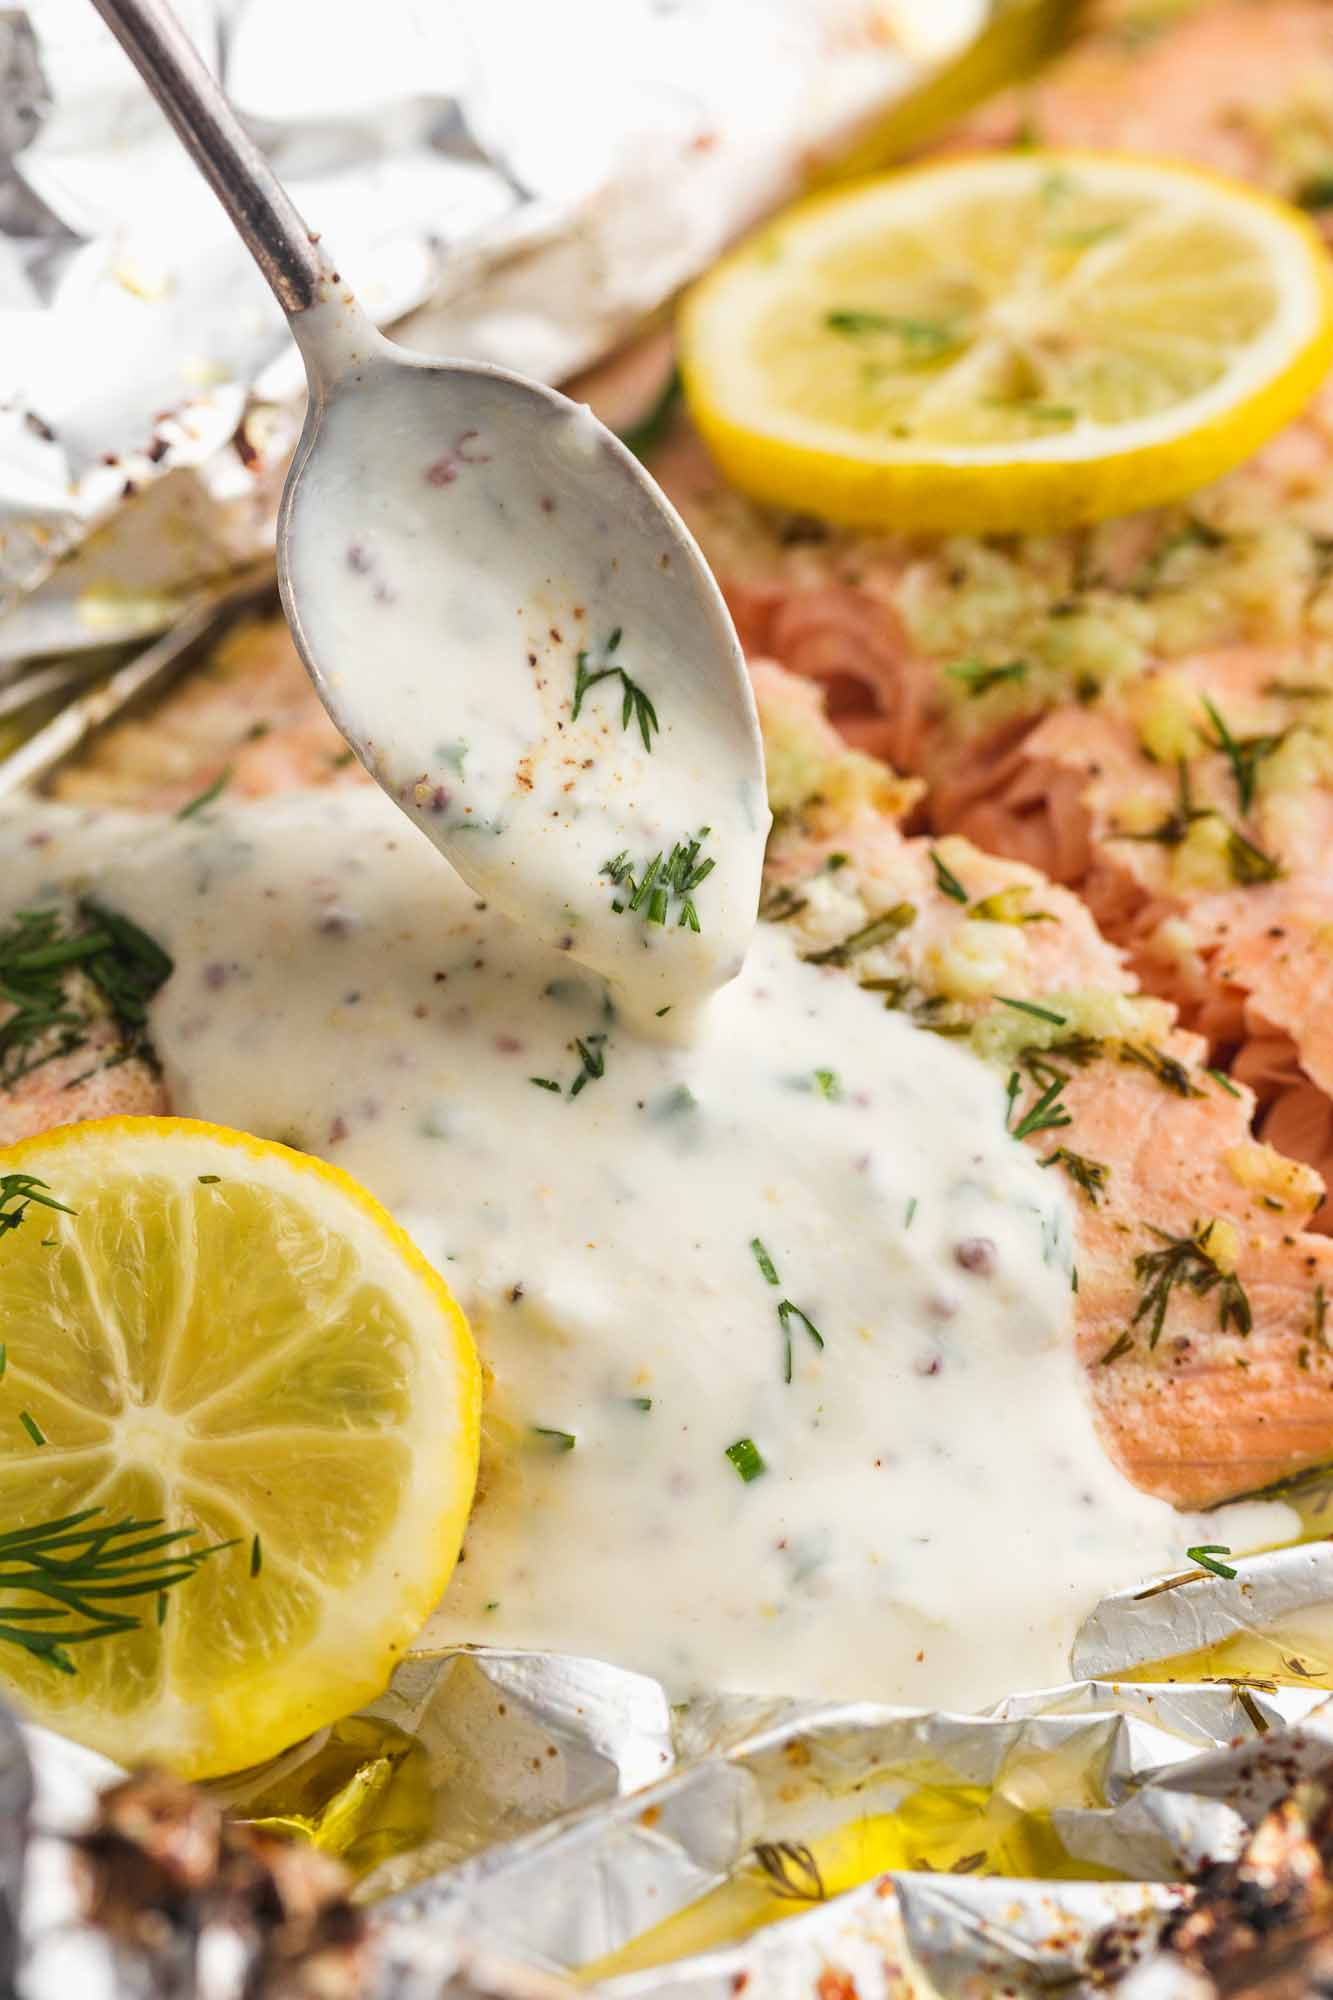 Drizzling cream sauce over the salmon